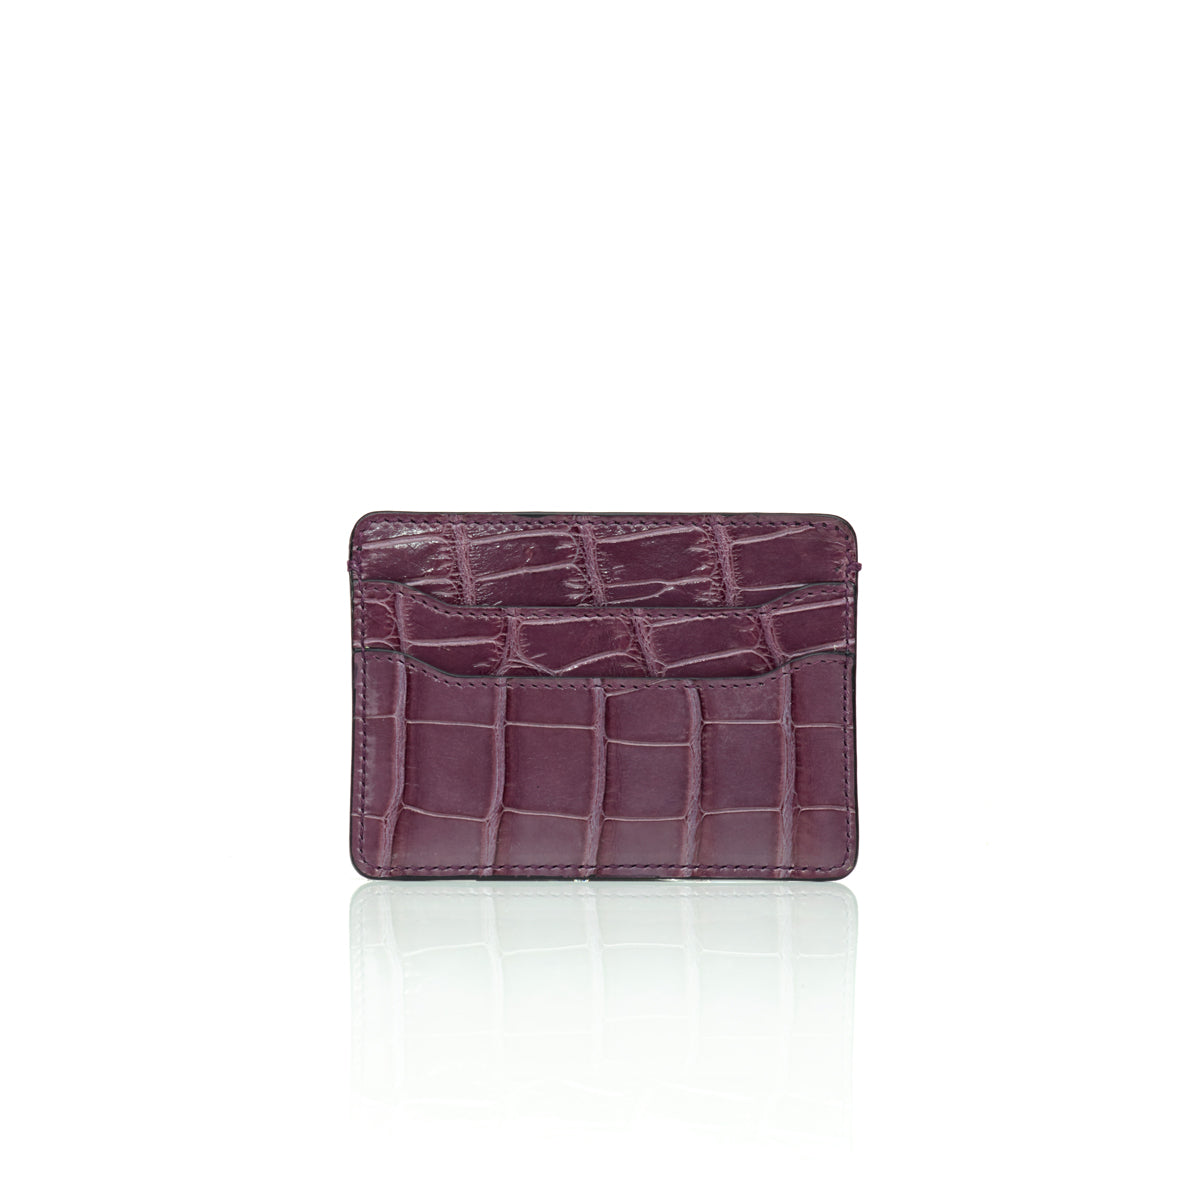 Credit Card Case - Purple Alligator